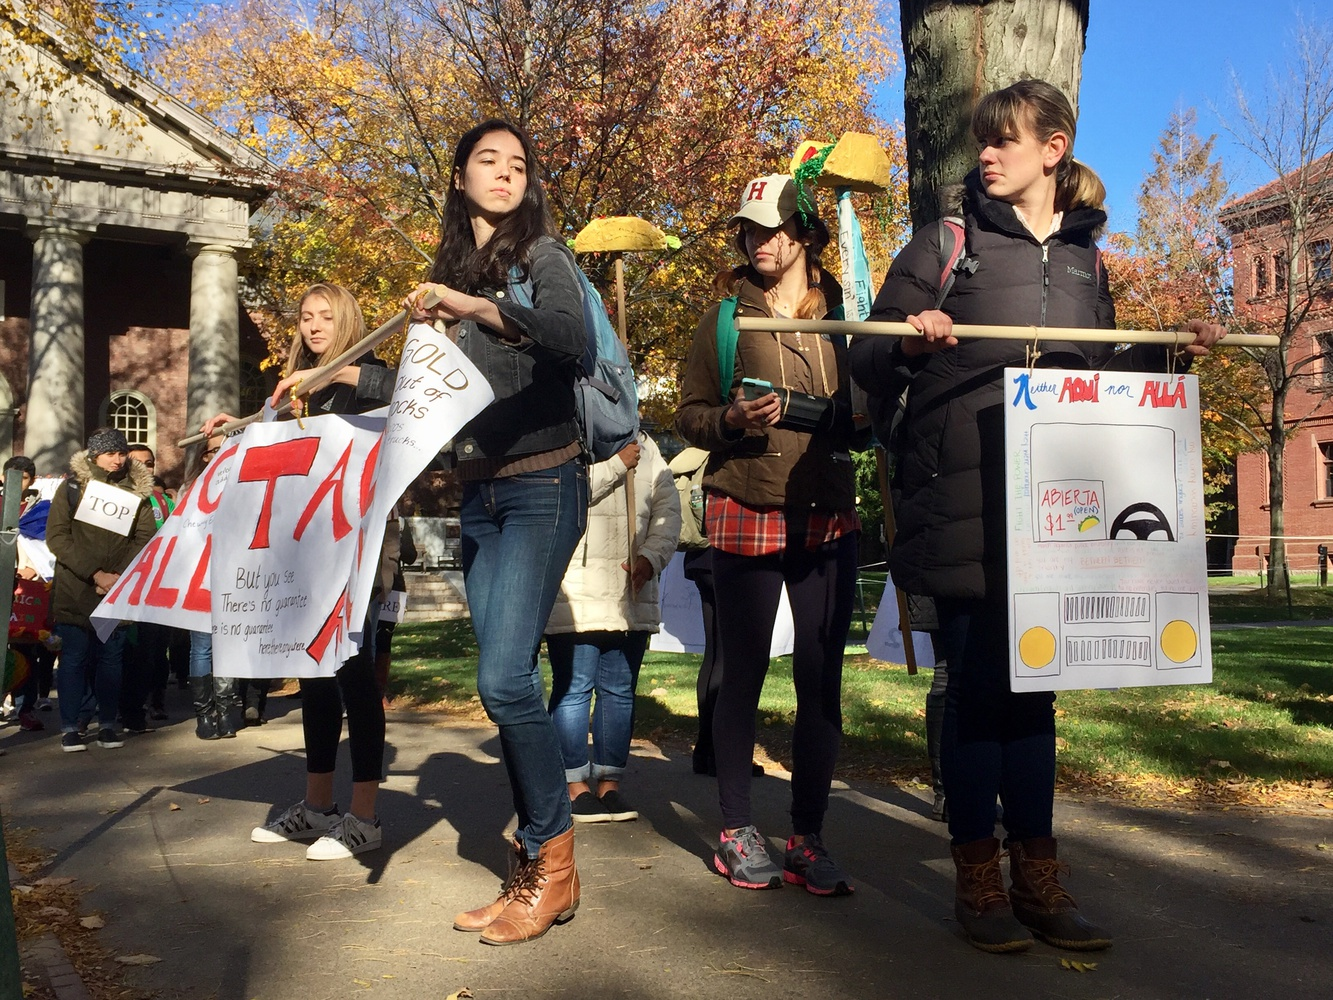 Students in Spanish 126: Performing Latinidad process through the yard costumed as a taco truck as a part of a performance piece exploring latinx experiences in the United States. The procession made stops around Harvard Yard for a poetry reading, a coordinated spoken word piece, and other acted performances commenting on anti-latinx discourse in the 2016 presidential election.